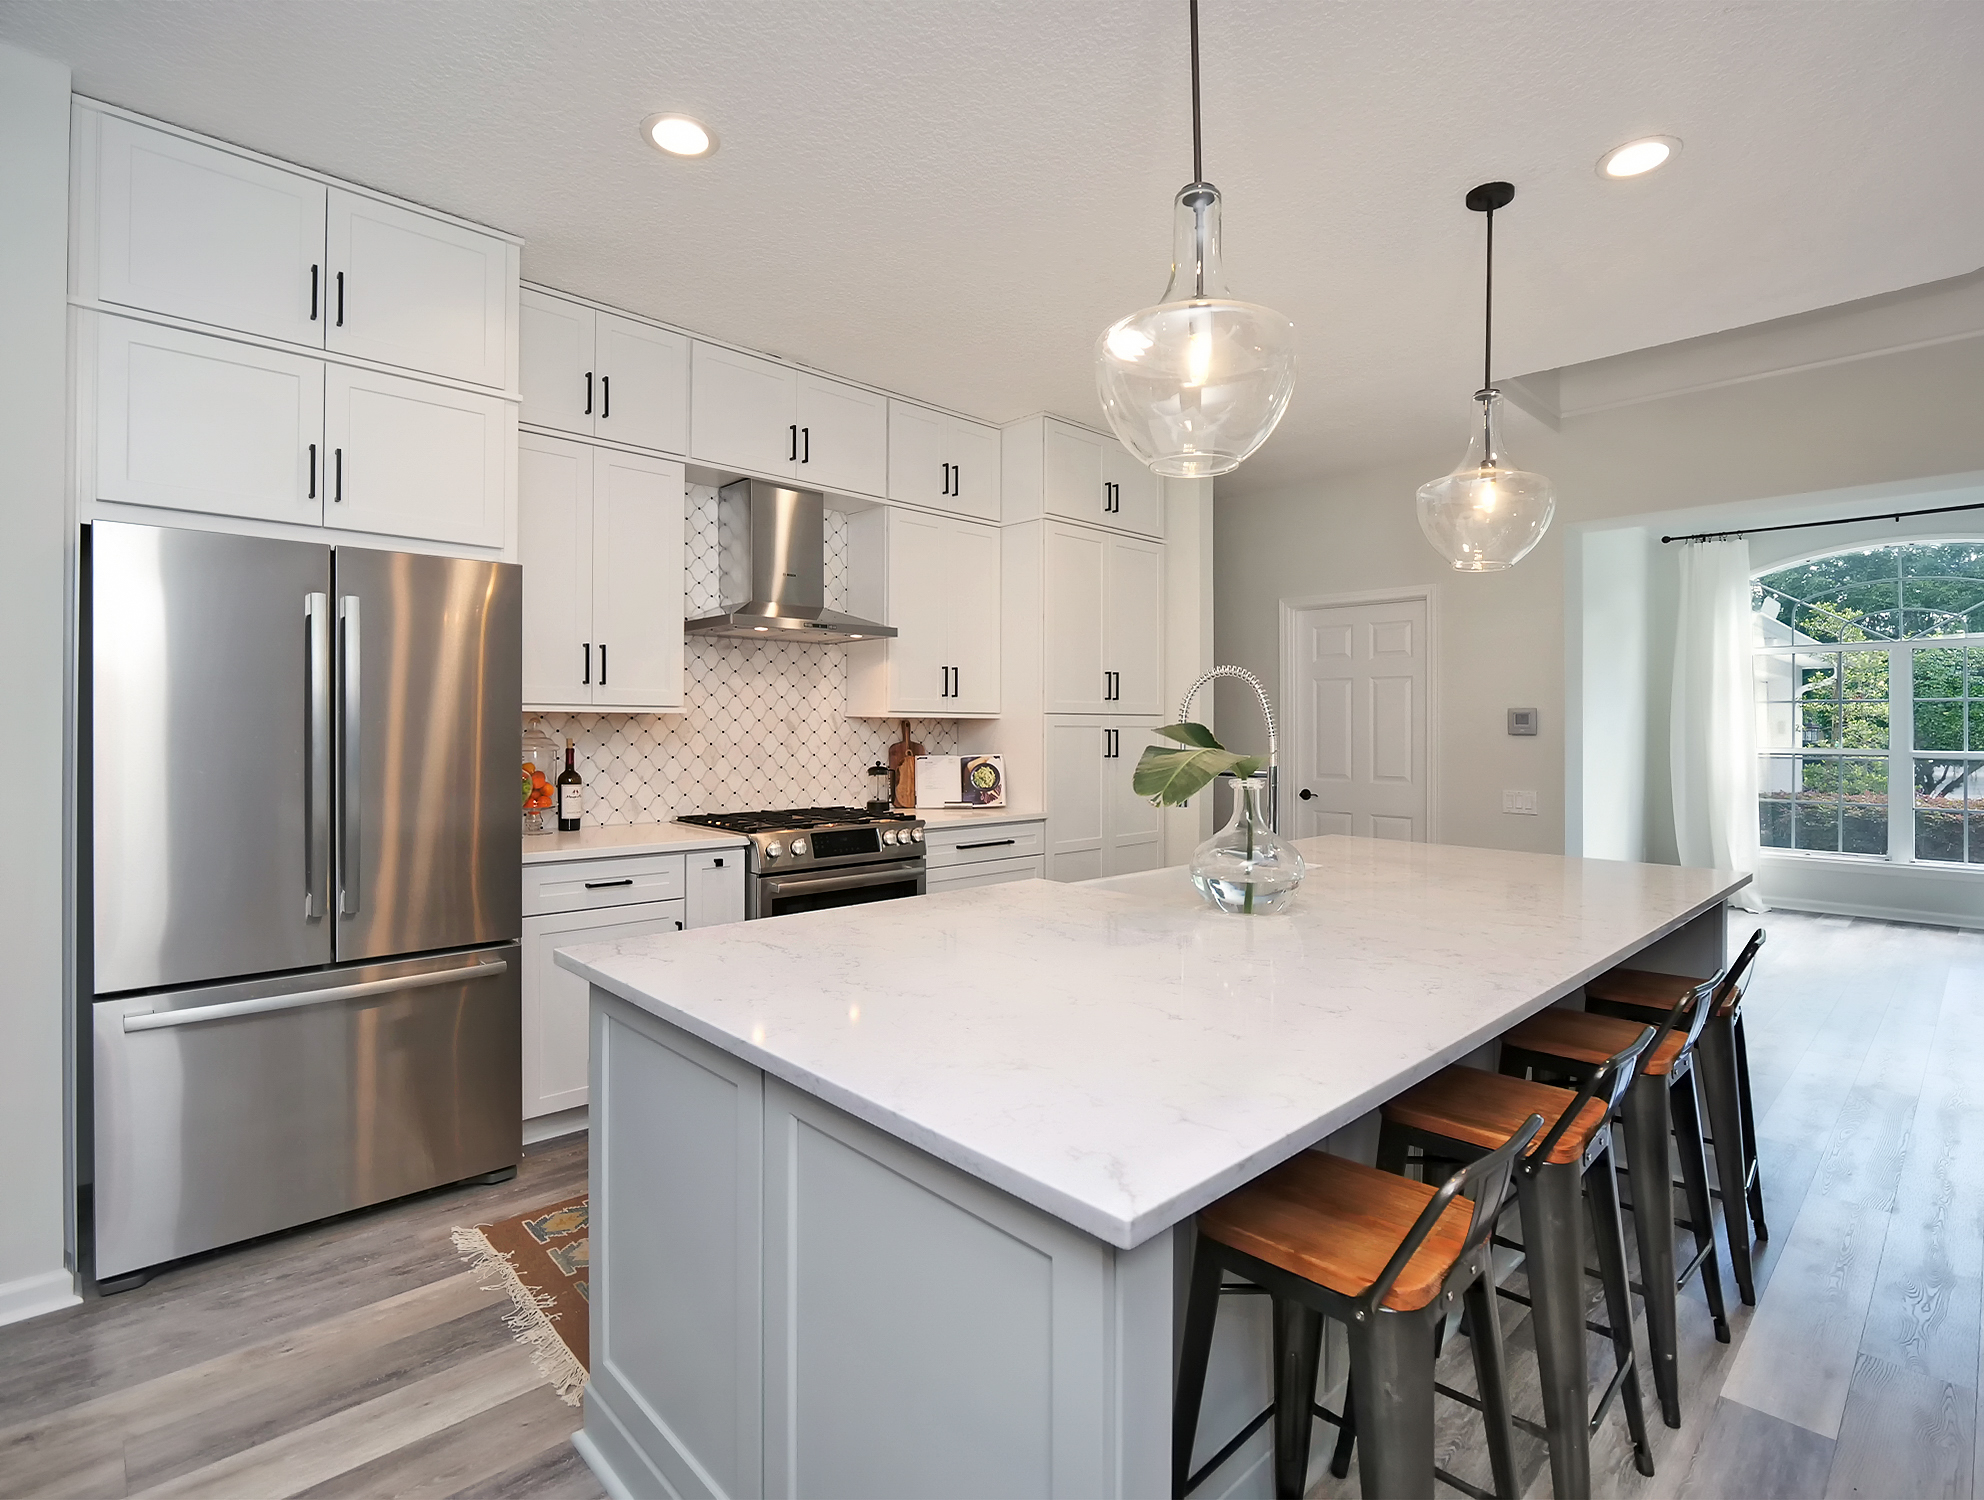 Remodeled Kitchen - Woodsman Kitchens and Cabinets